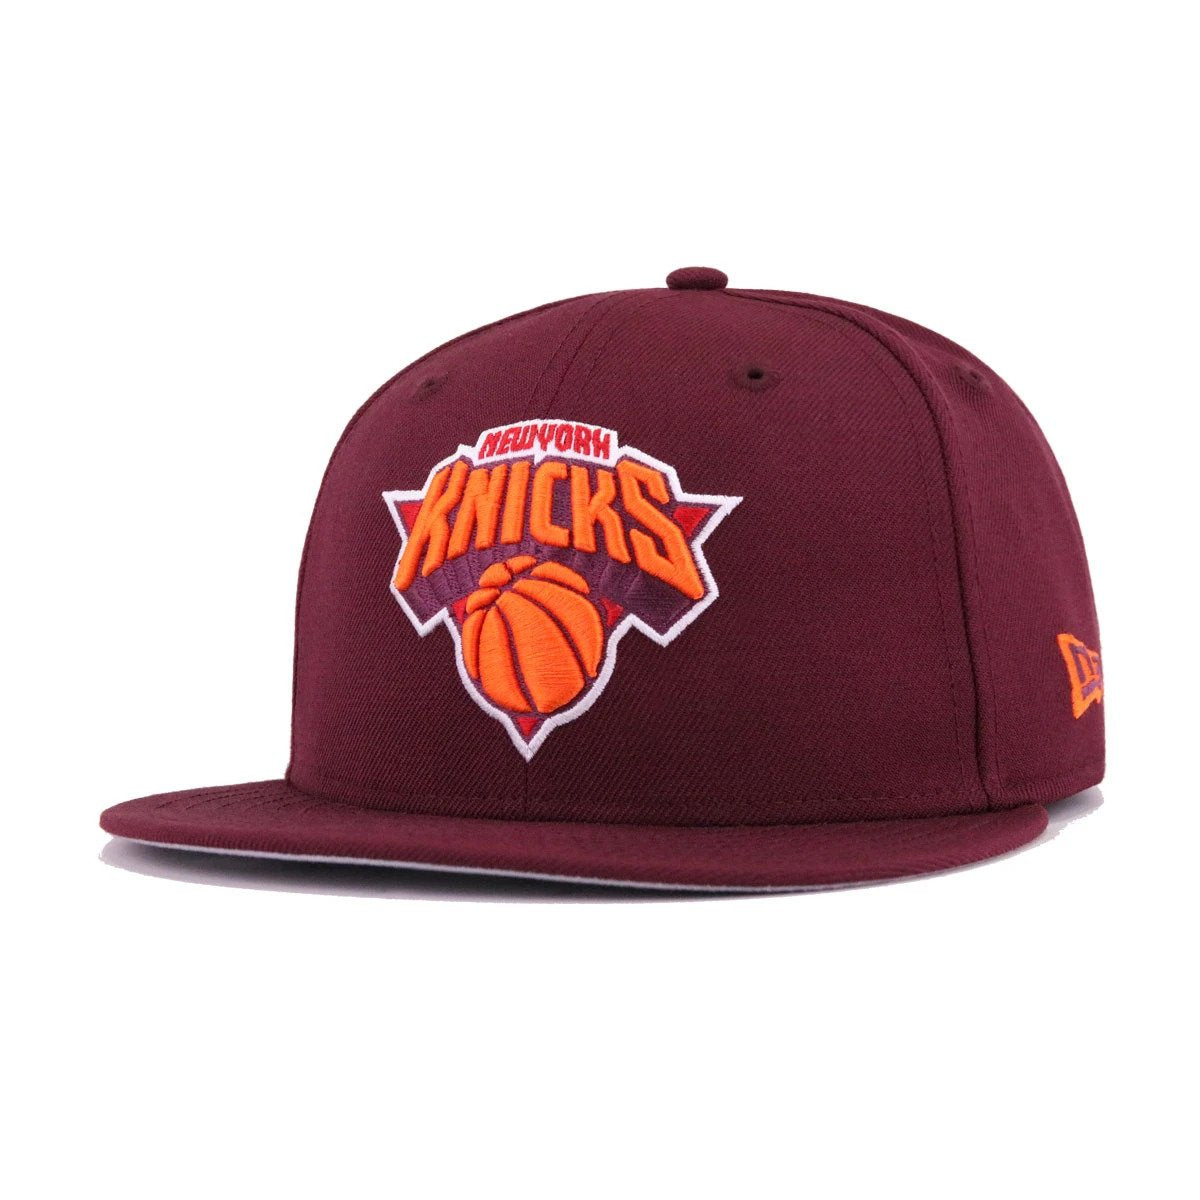 New York Knicks Maroon Orangeade Scarlet New Era 9Fifty Snapback